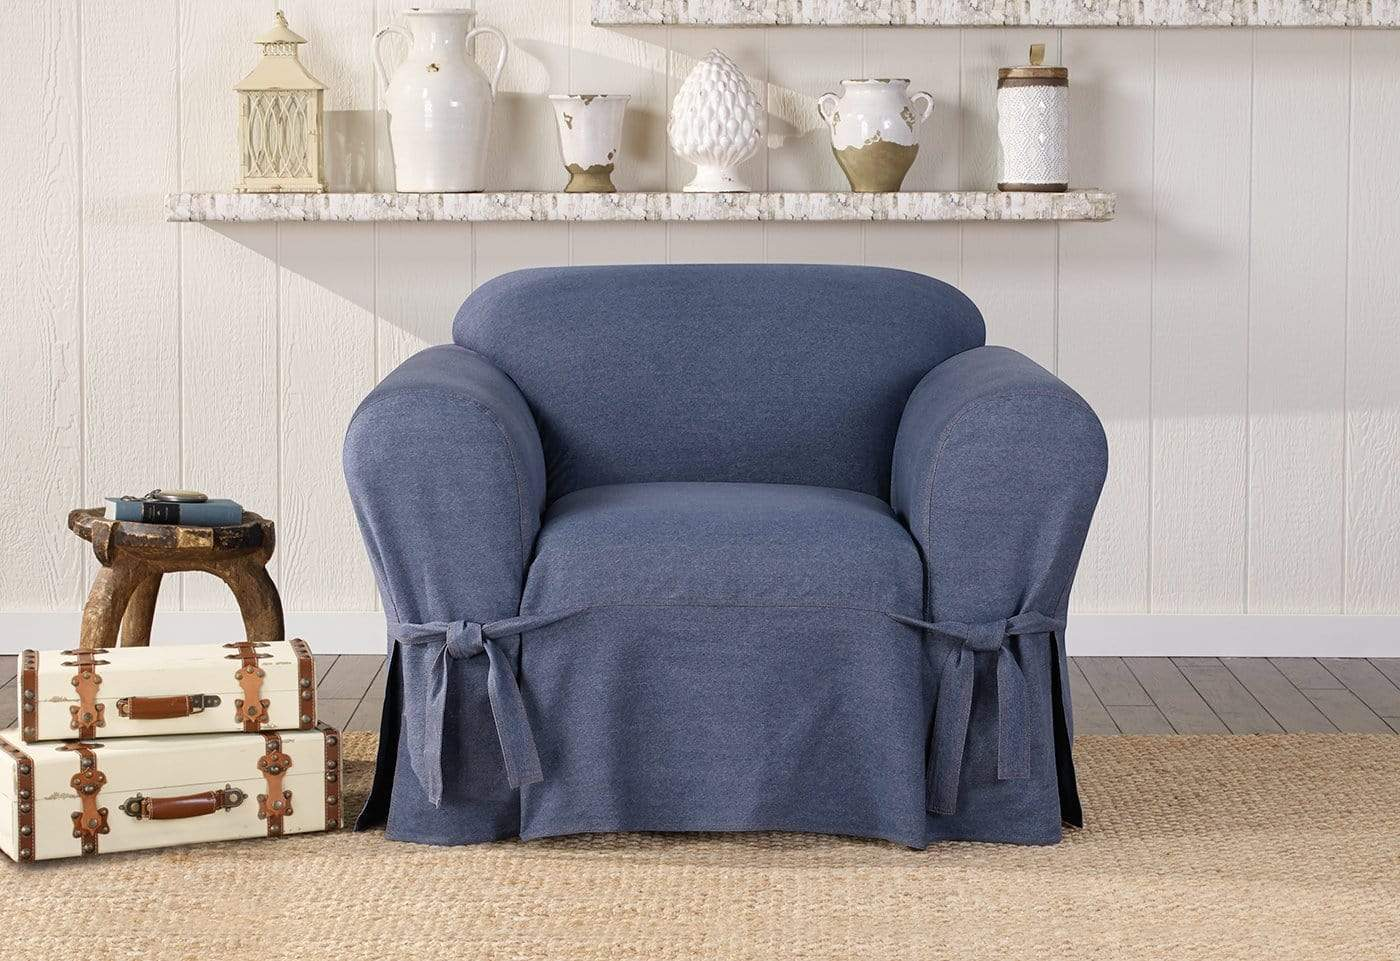 Authentic Denim One Piece Chair Slipcover 1/4 Inch Double Needle Stitching Machine Washable - Chair / Box Cushion / Indigo